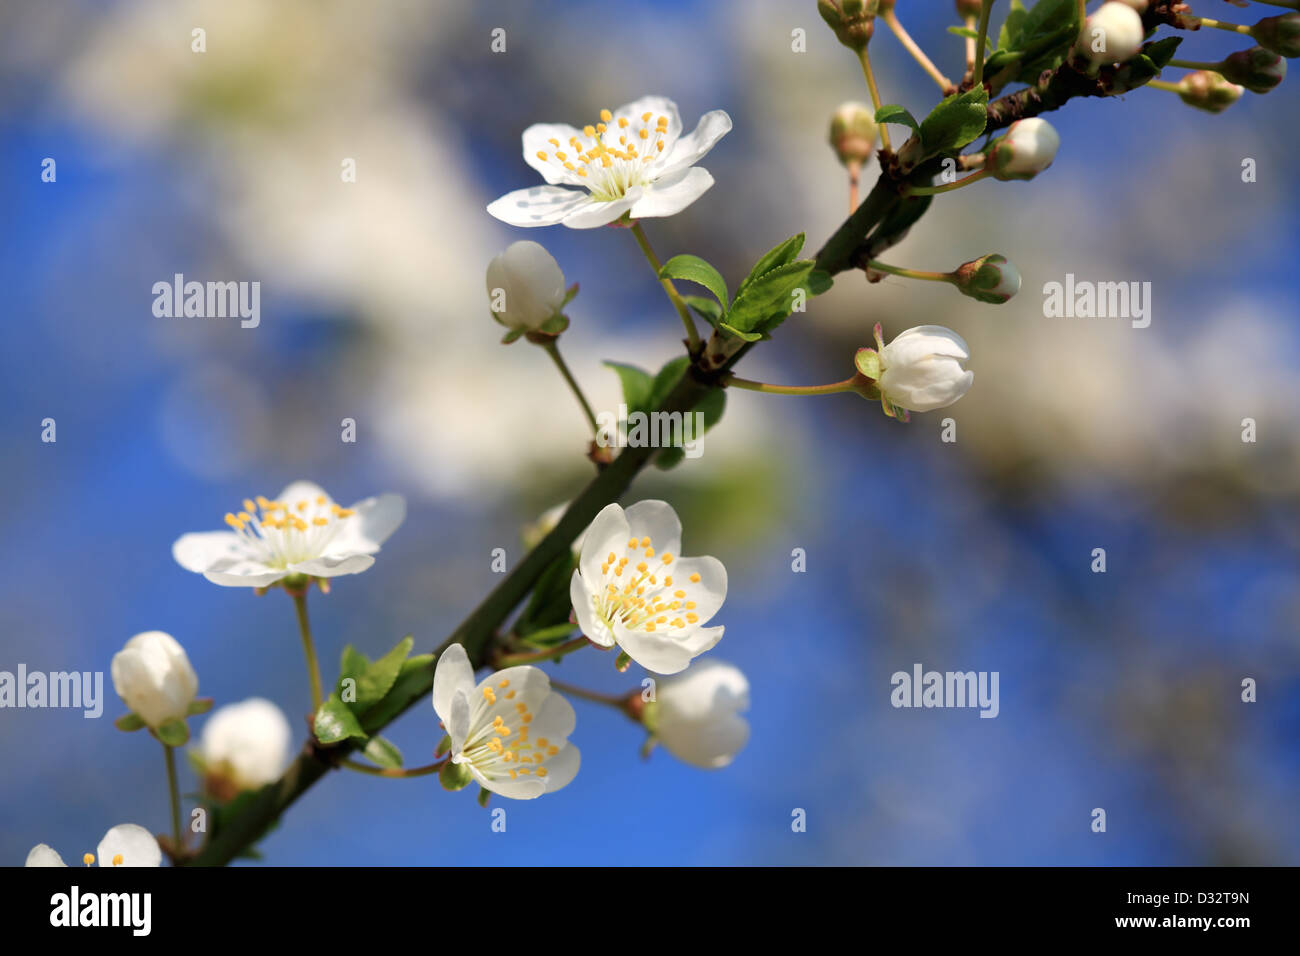 White Plum Flower In Close Up Stock Photo 53538065 Alamy